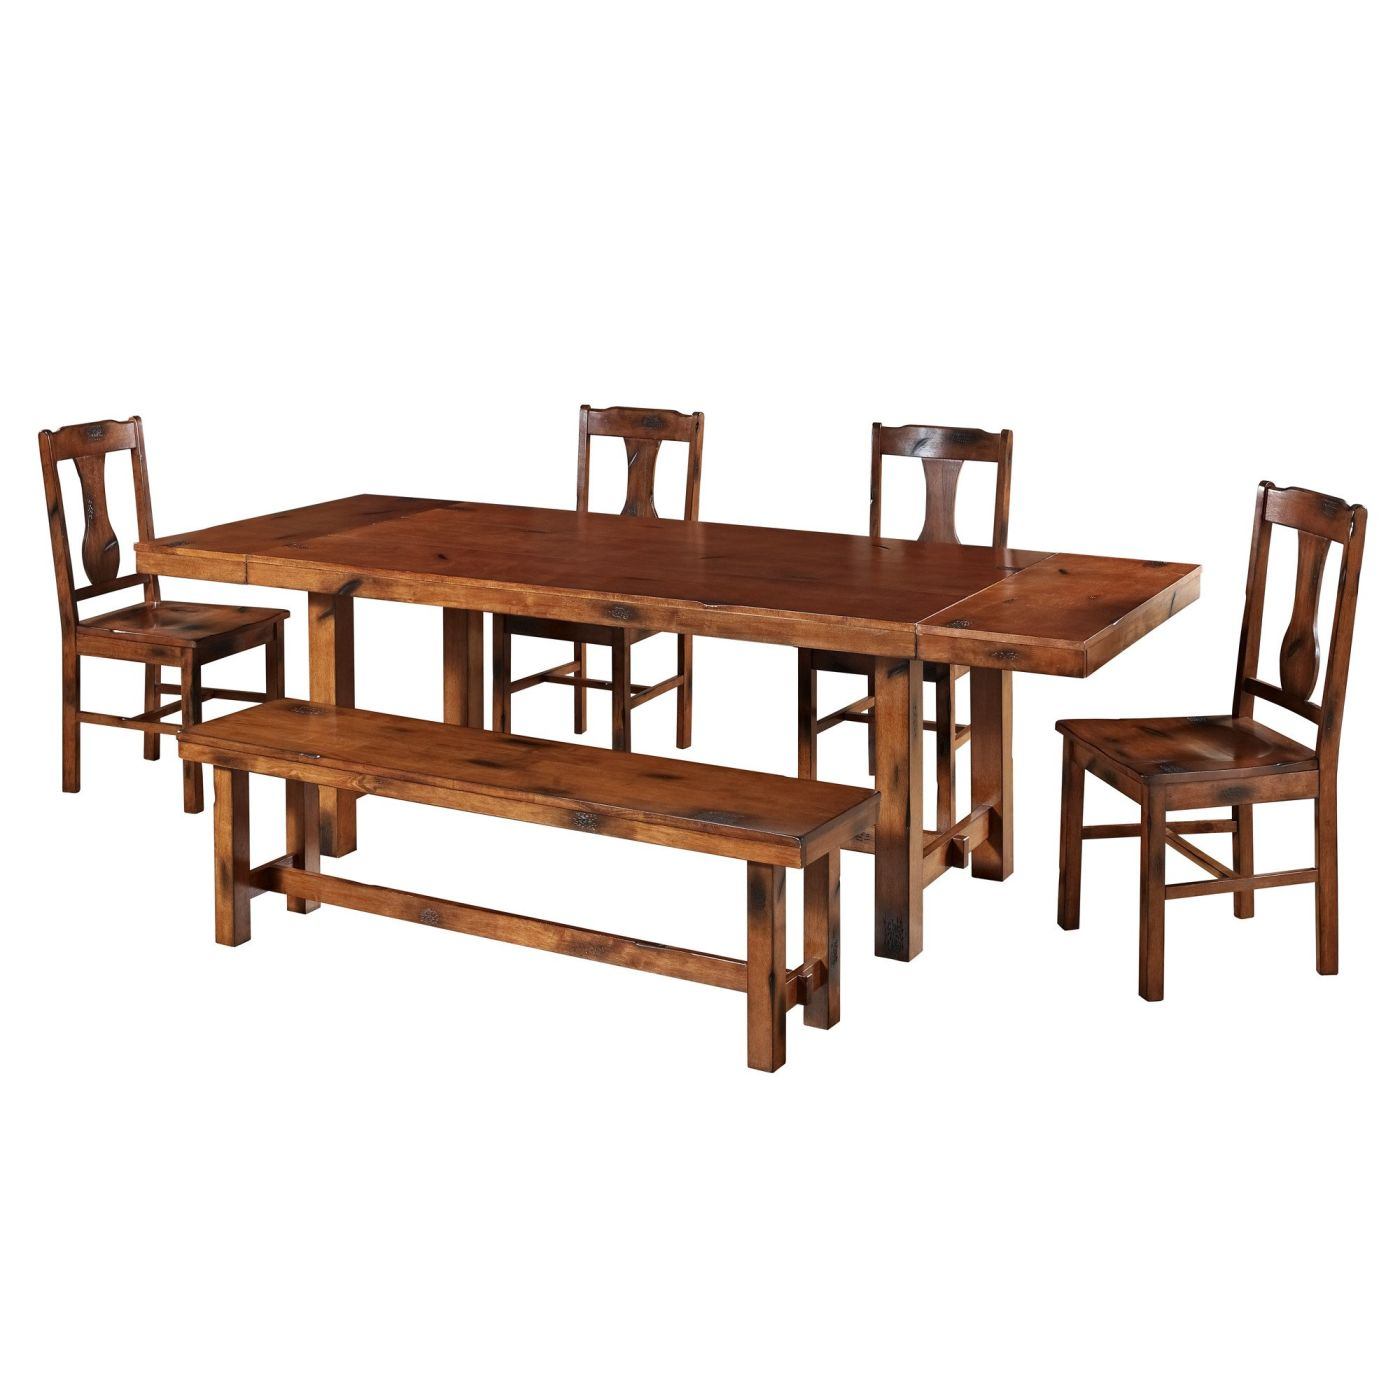 Dark Wood Dining Set: Buy Walker Edison C60H2DO 6-Piece Dark Oak Wood Dining Set At Contemporary Furniture Warehouse